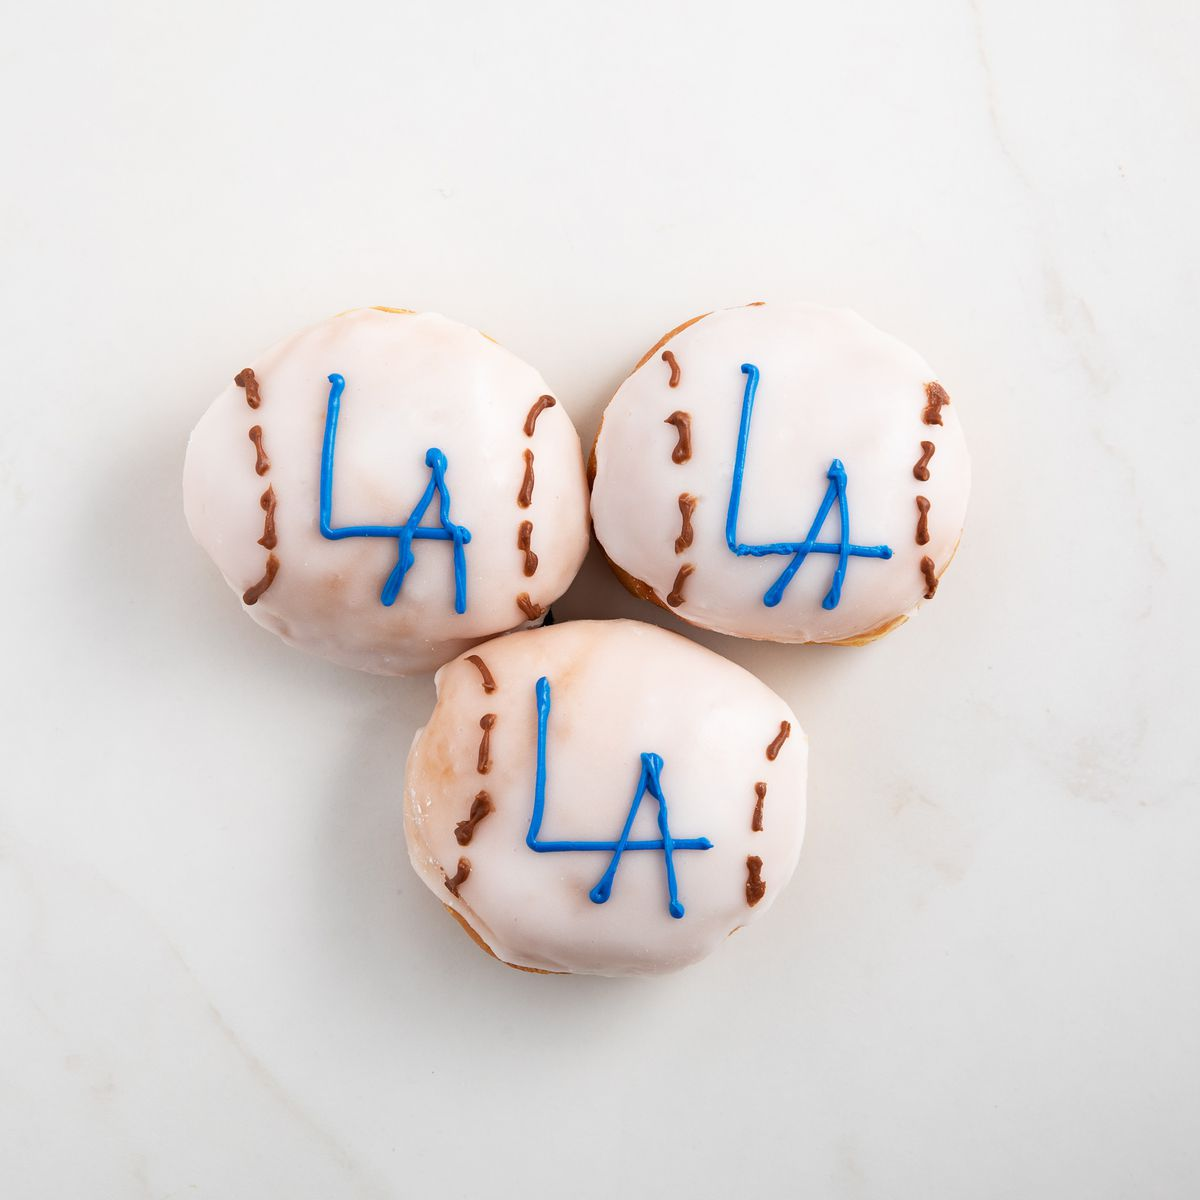 Dodgers baseball-logo white donuts with a marble background.